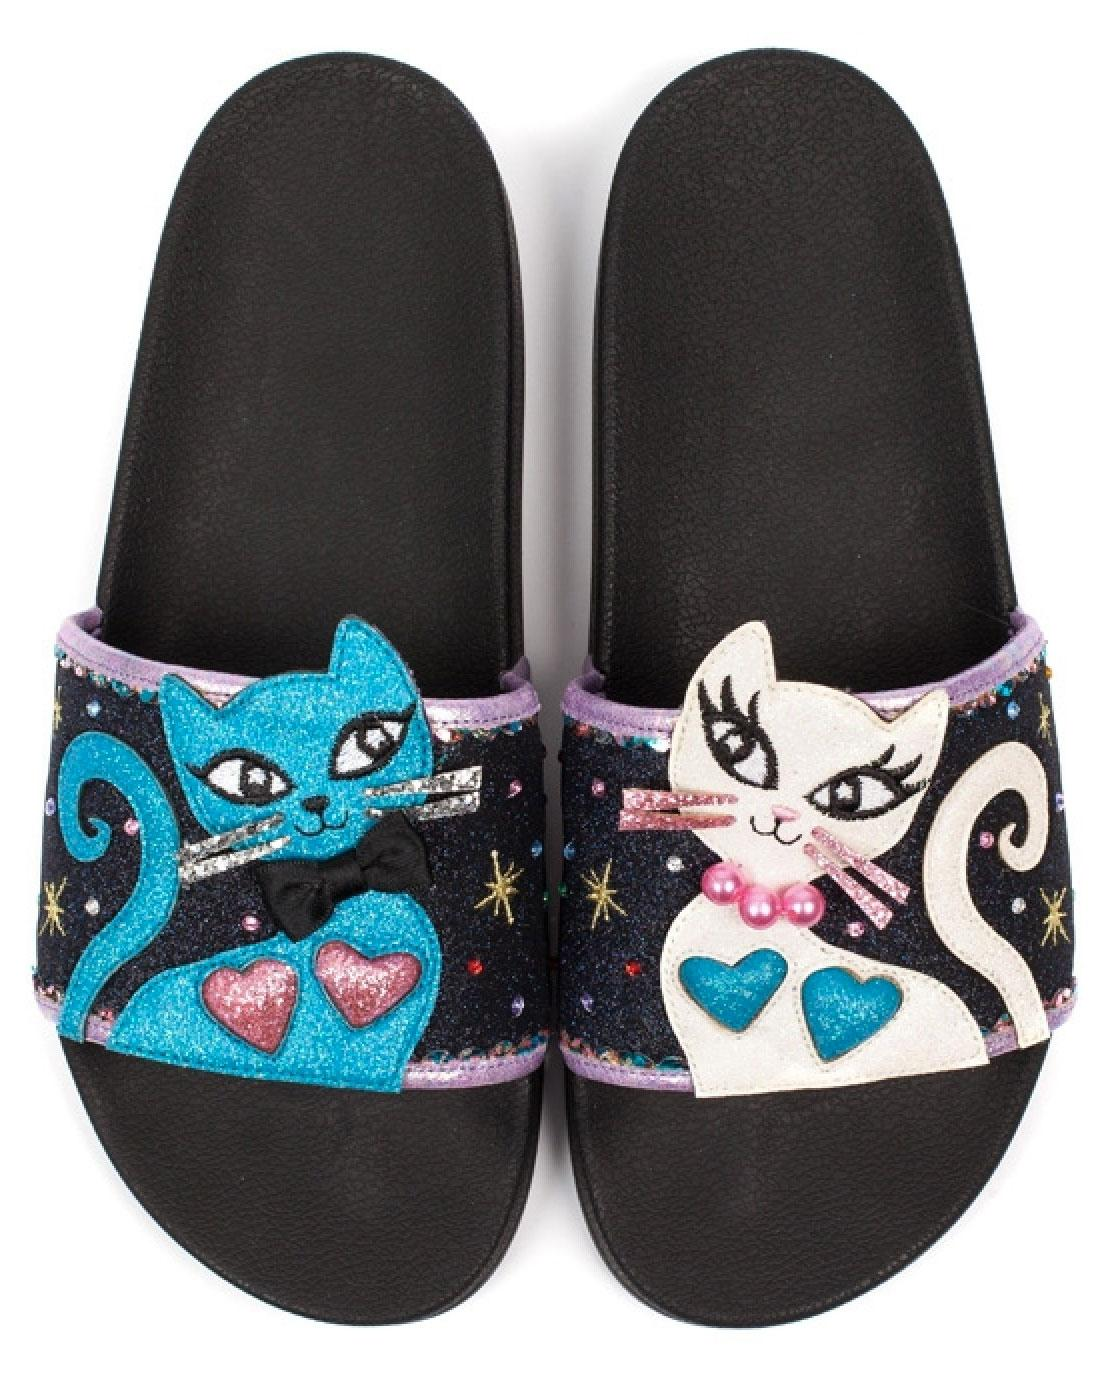 Purfect Pretty IRREGULAR CHOICE Pool Slide Sandals